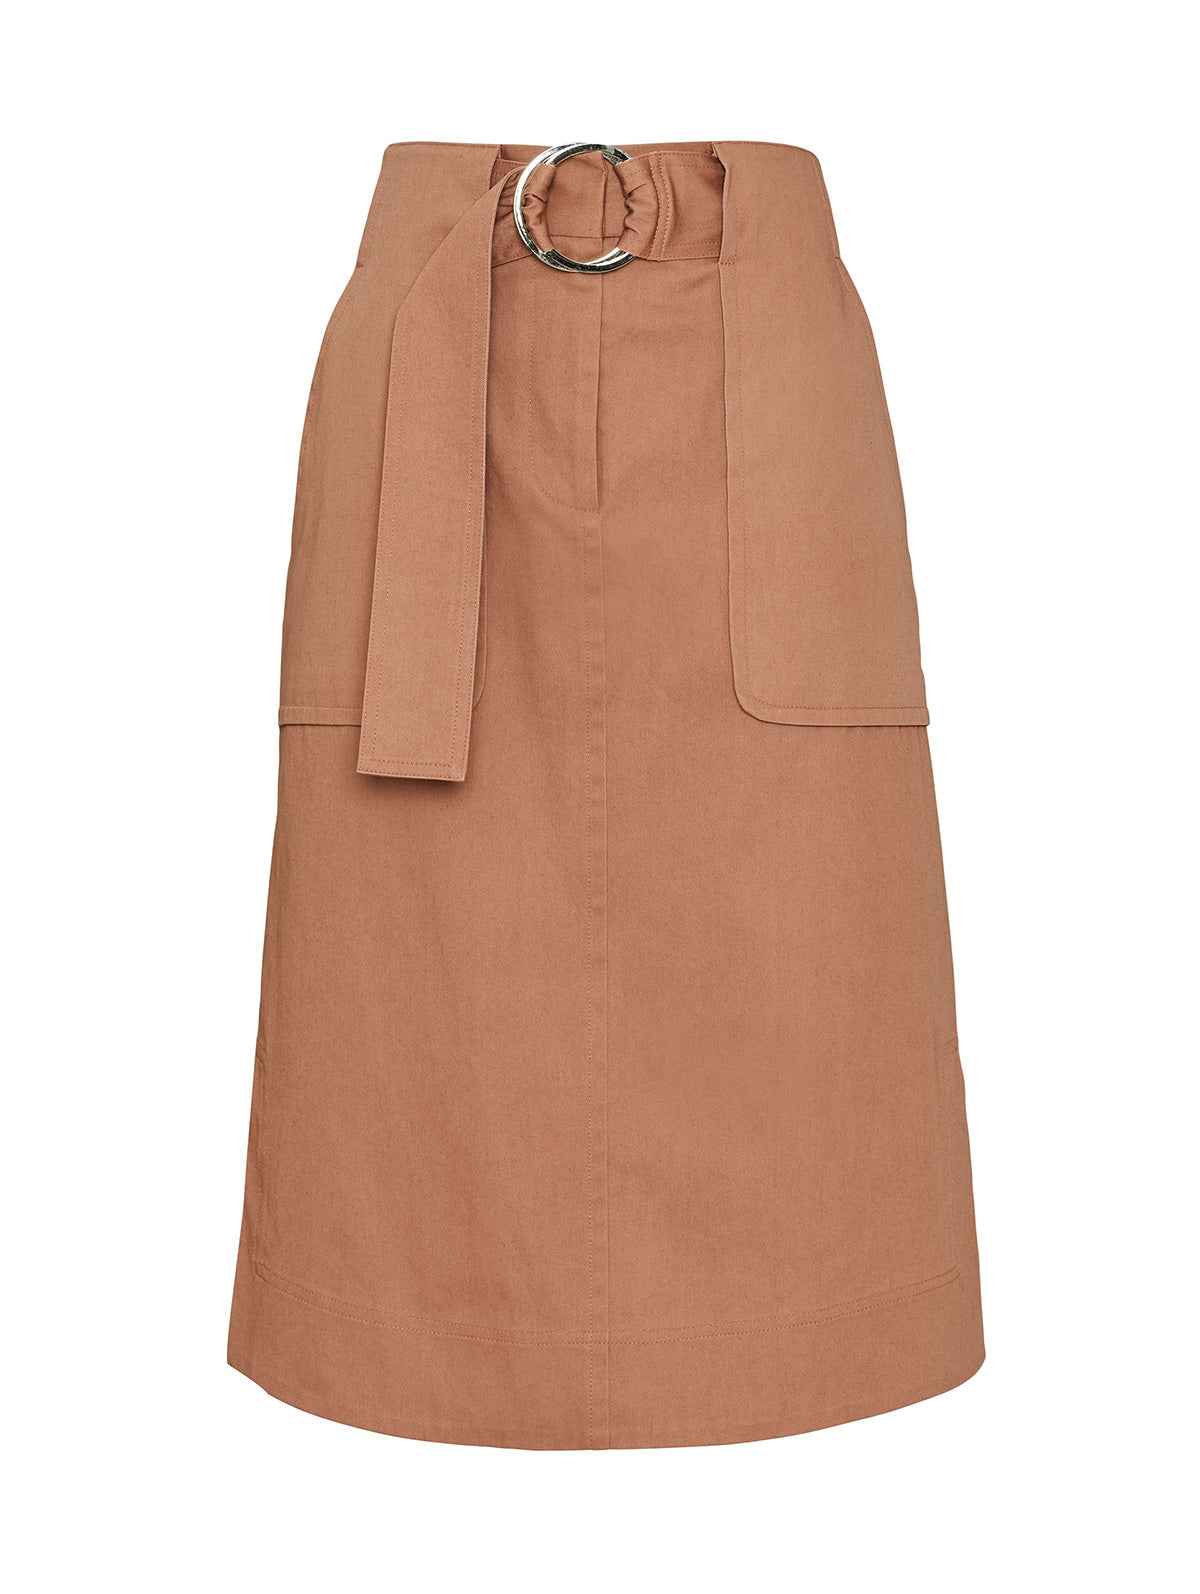 RIDING SKIRT, SALMON